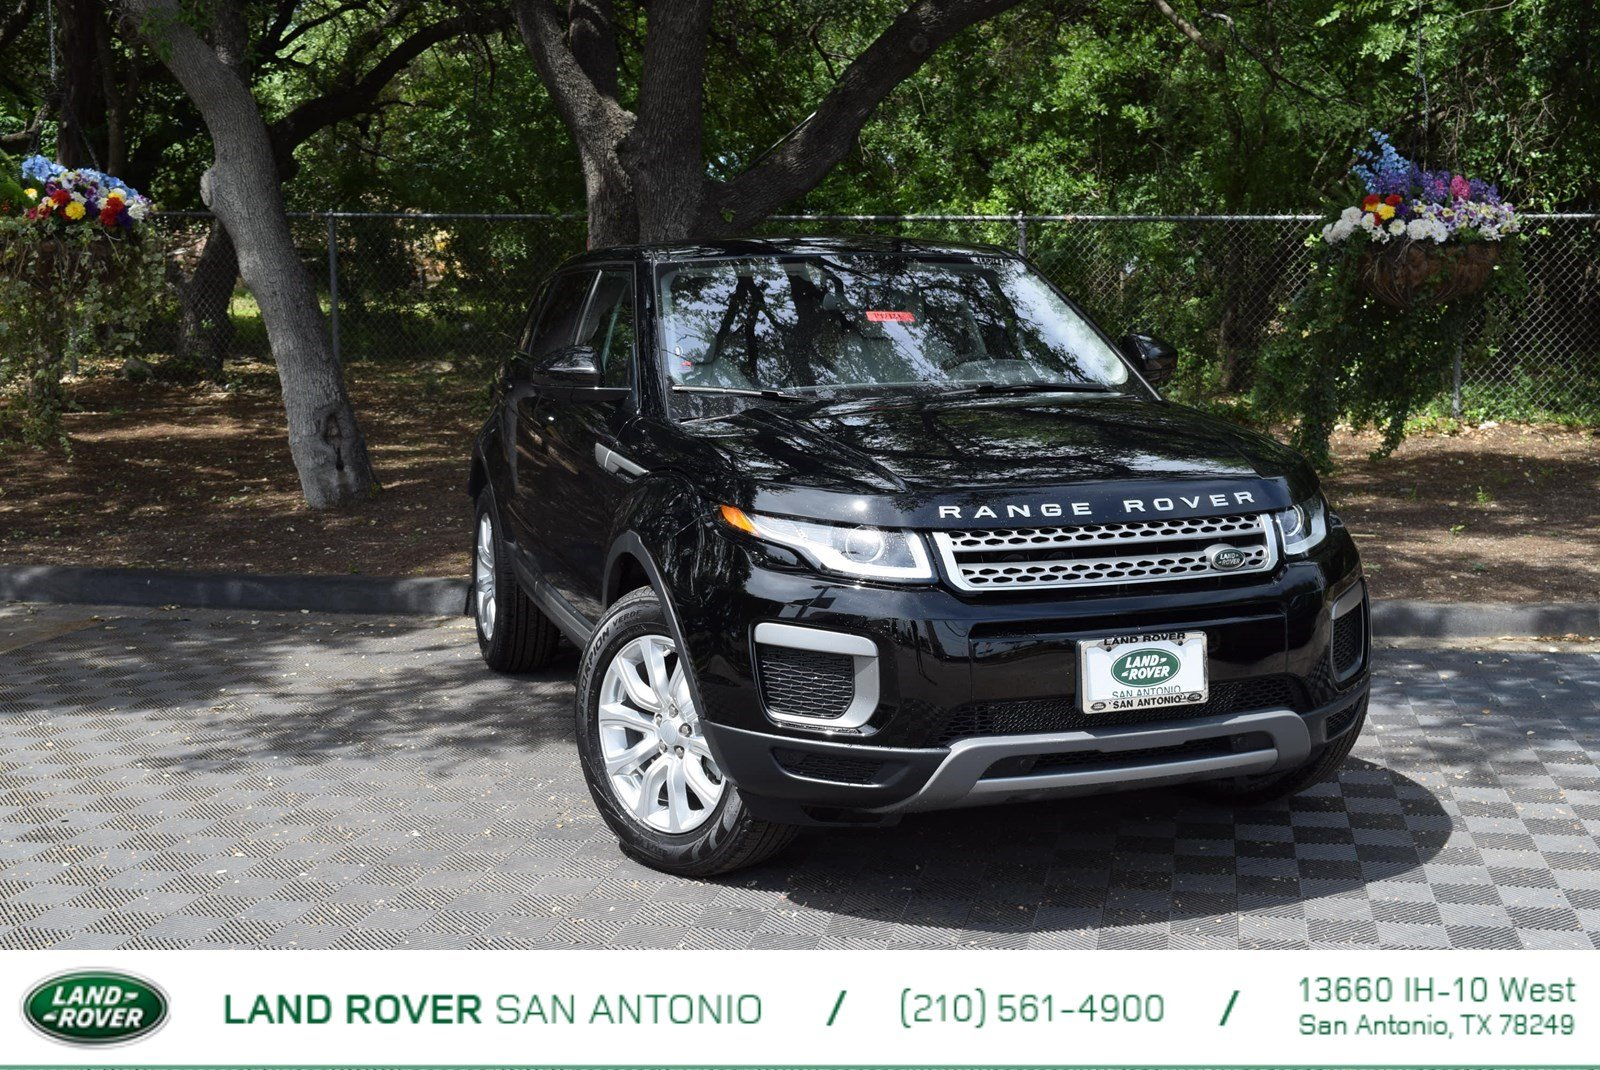 2017 Land Rover Range Rover Evoque With Navigation & 4WD